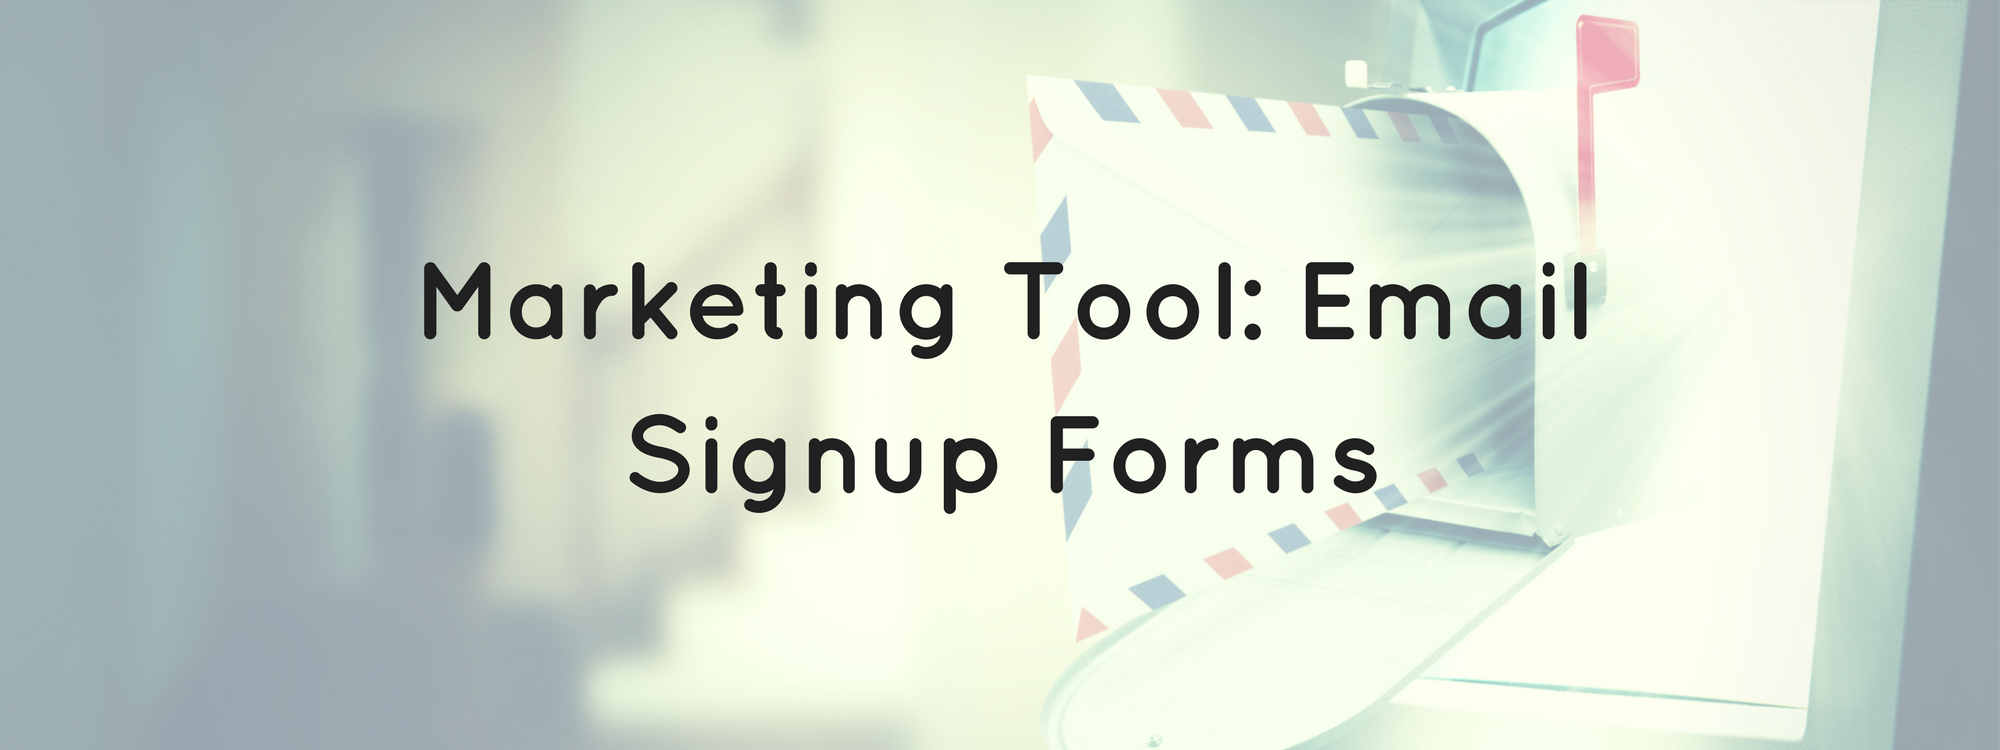 Marketing Tool Email Sign Up Forms